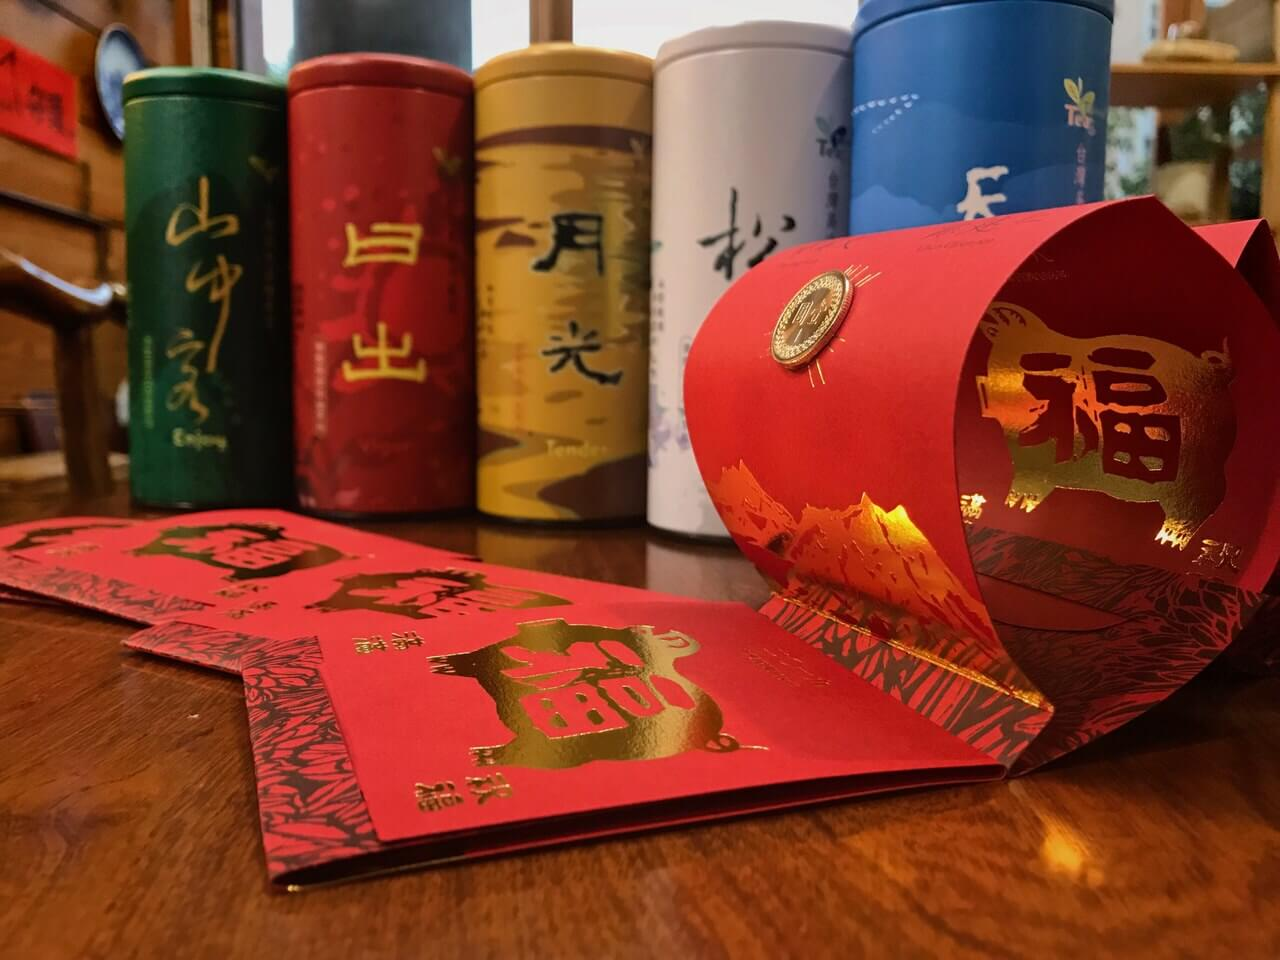 李家茶店 Lee's Tea House | Offering you the best tea and service is our misson.